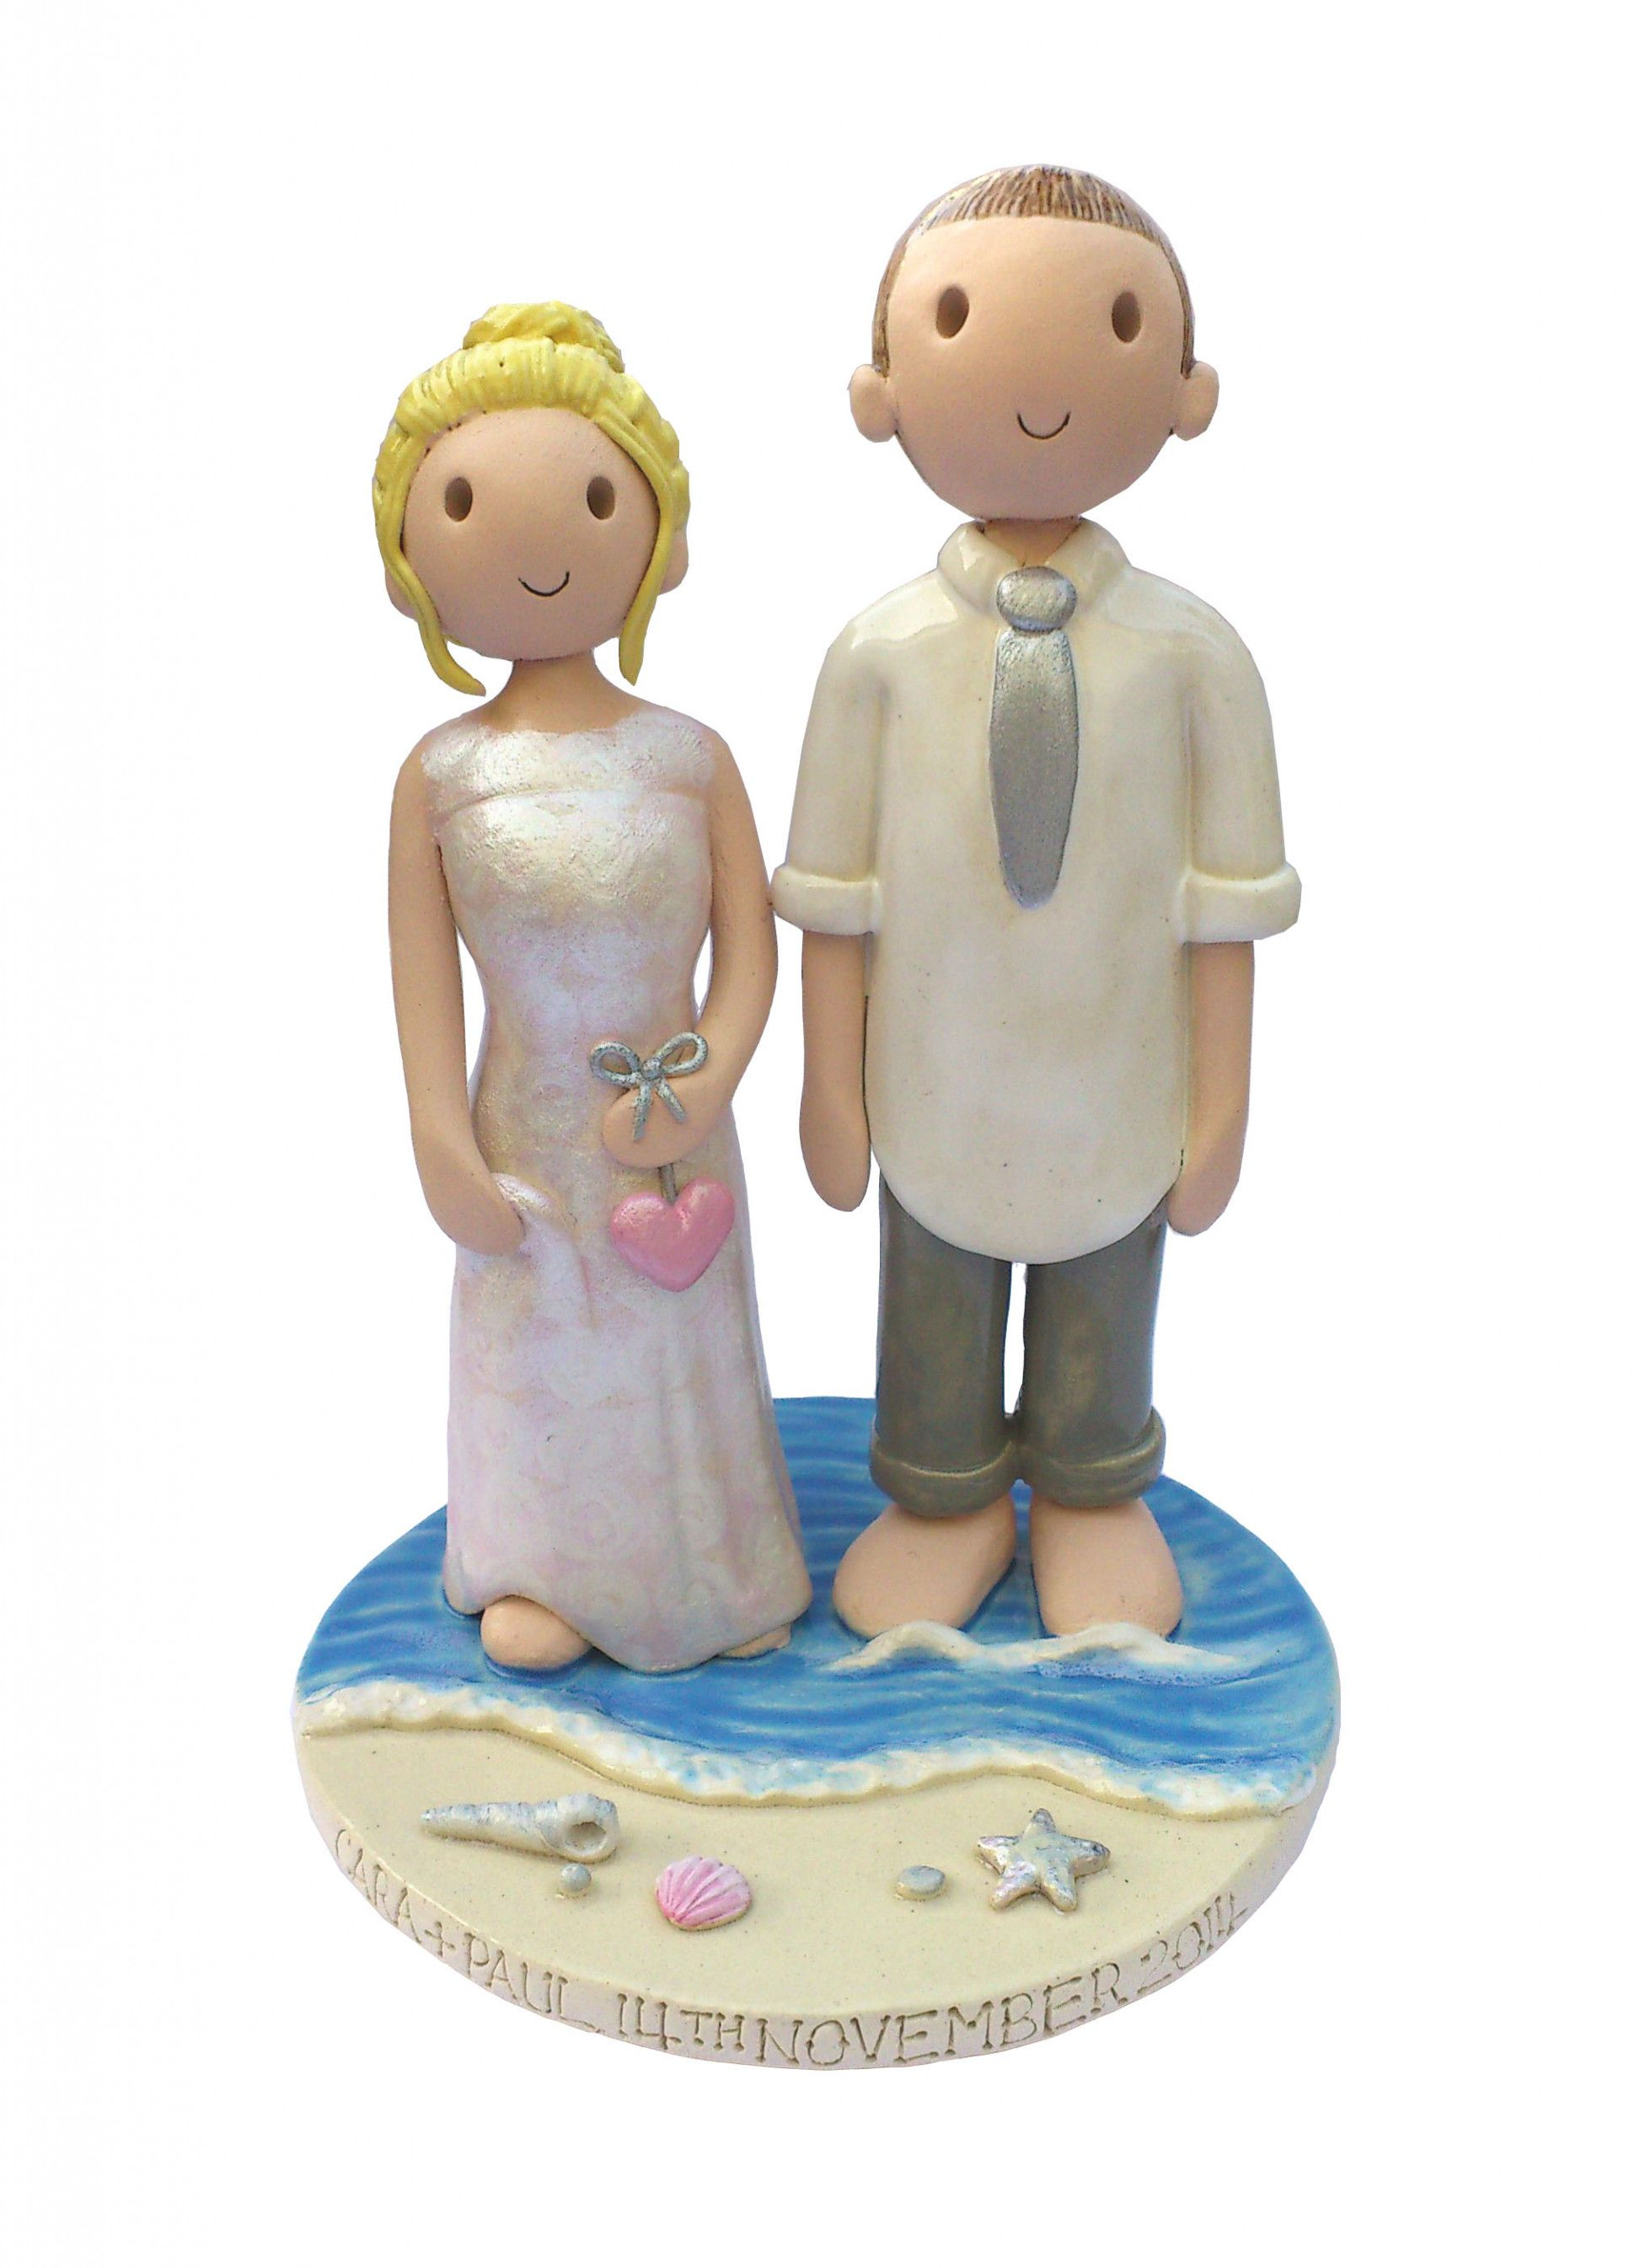 The Cheapest Way To Earn Your Free Ticket To Beach Wedding Cake